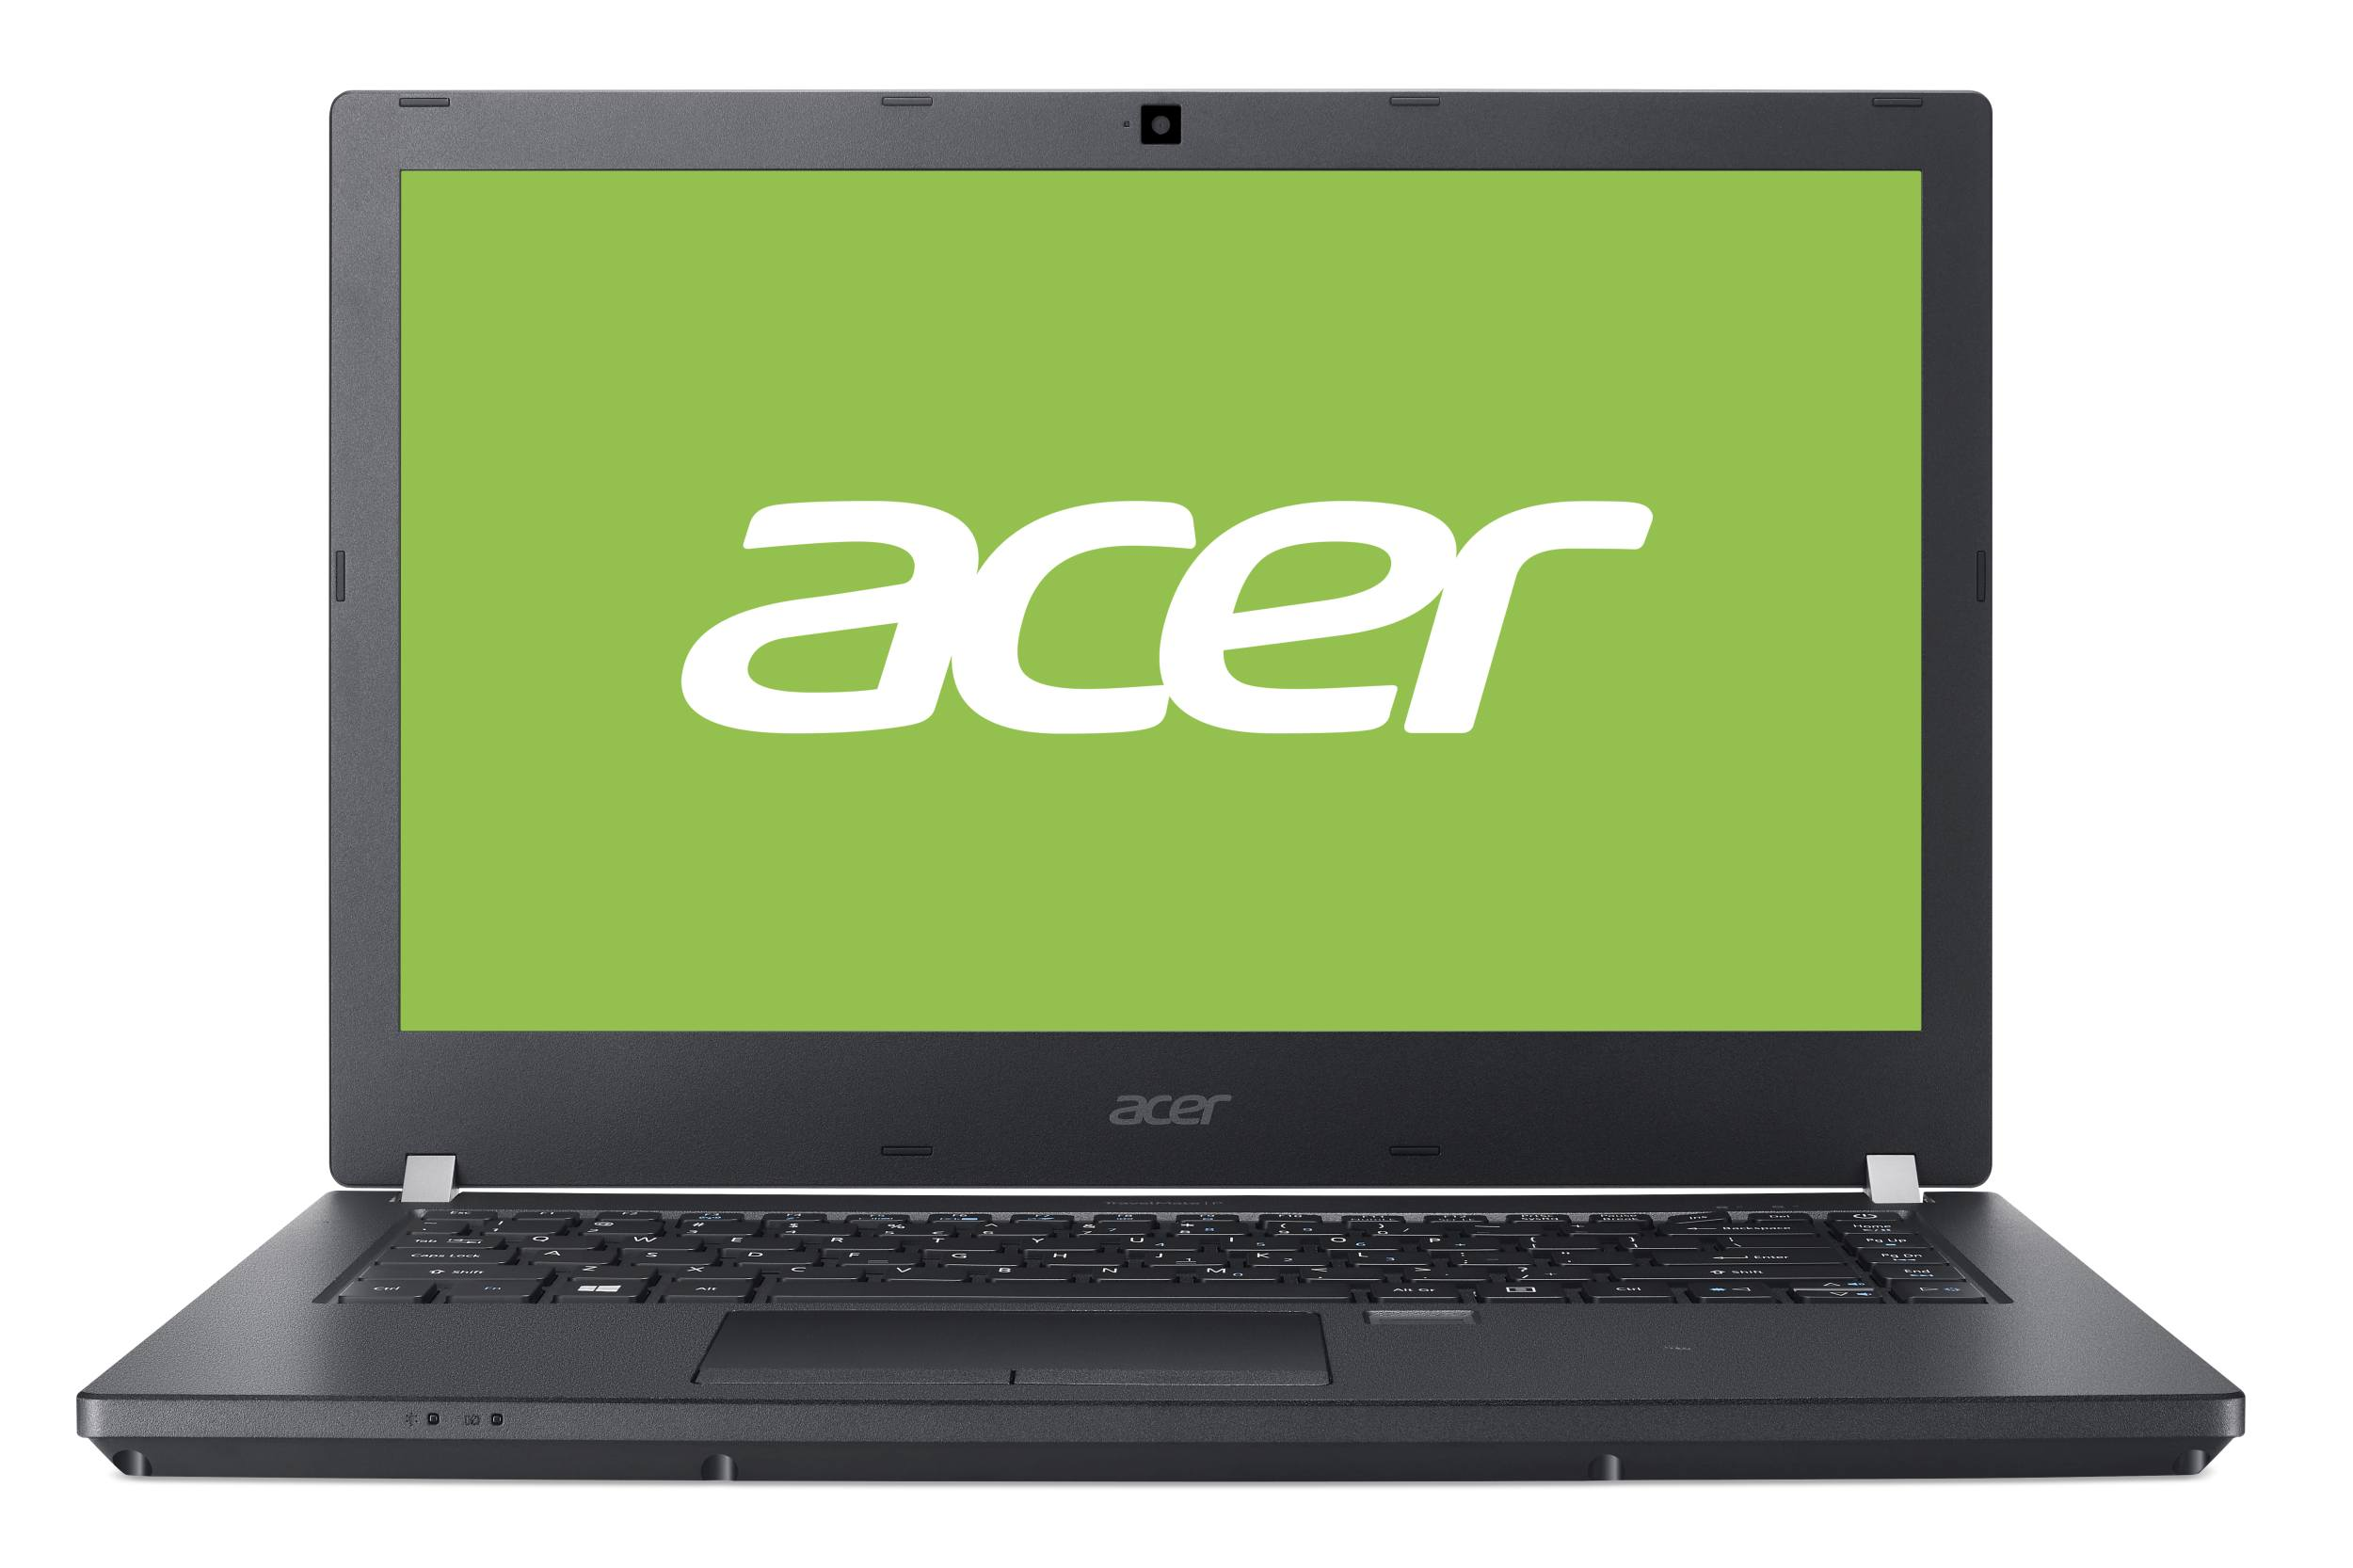 "AcerTravelMate P449-G2-M-39AW i3-7100U/4 GB+N/256GB PCle SSD+N/HD Graphics/14"" FHD IPS LED matný/BT/W10 Pro/Black"